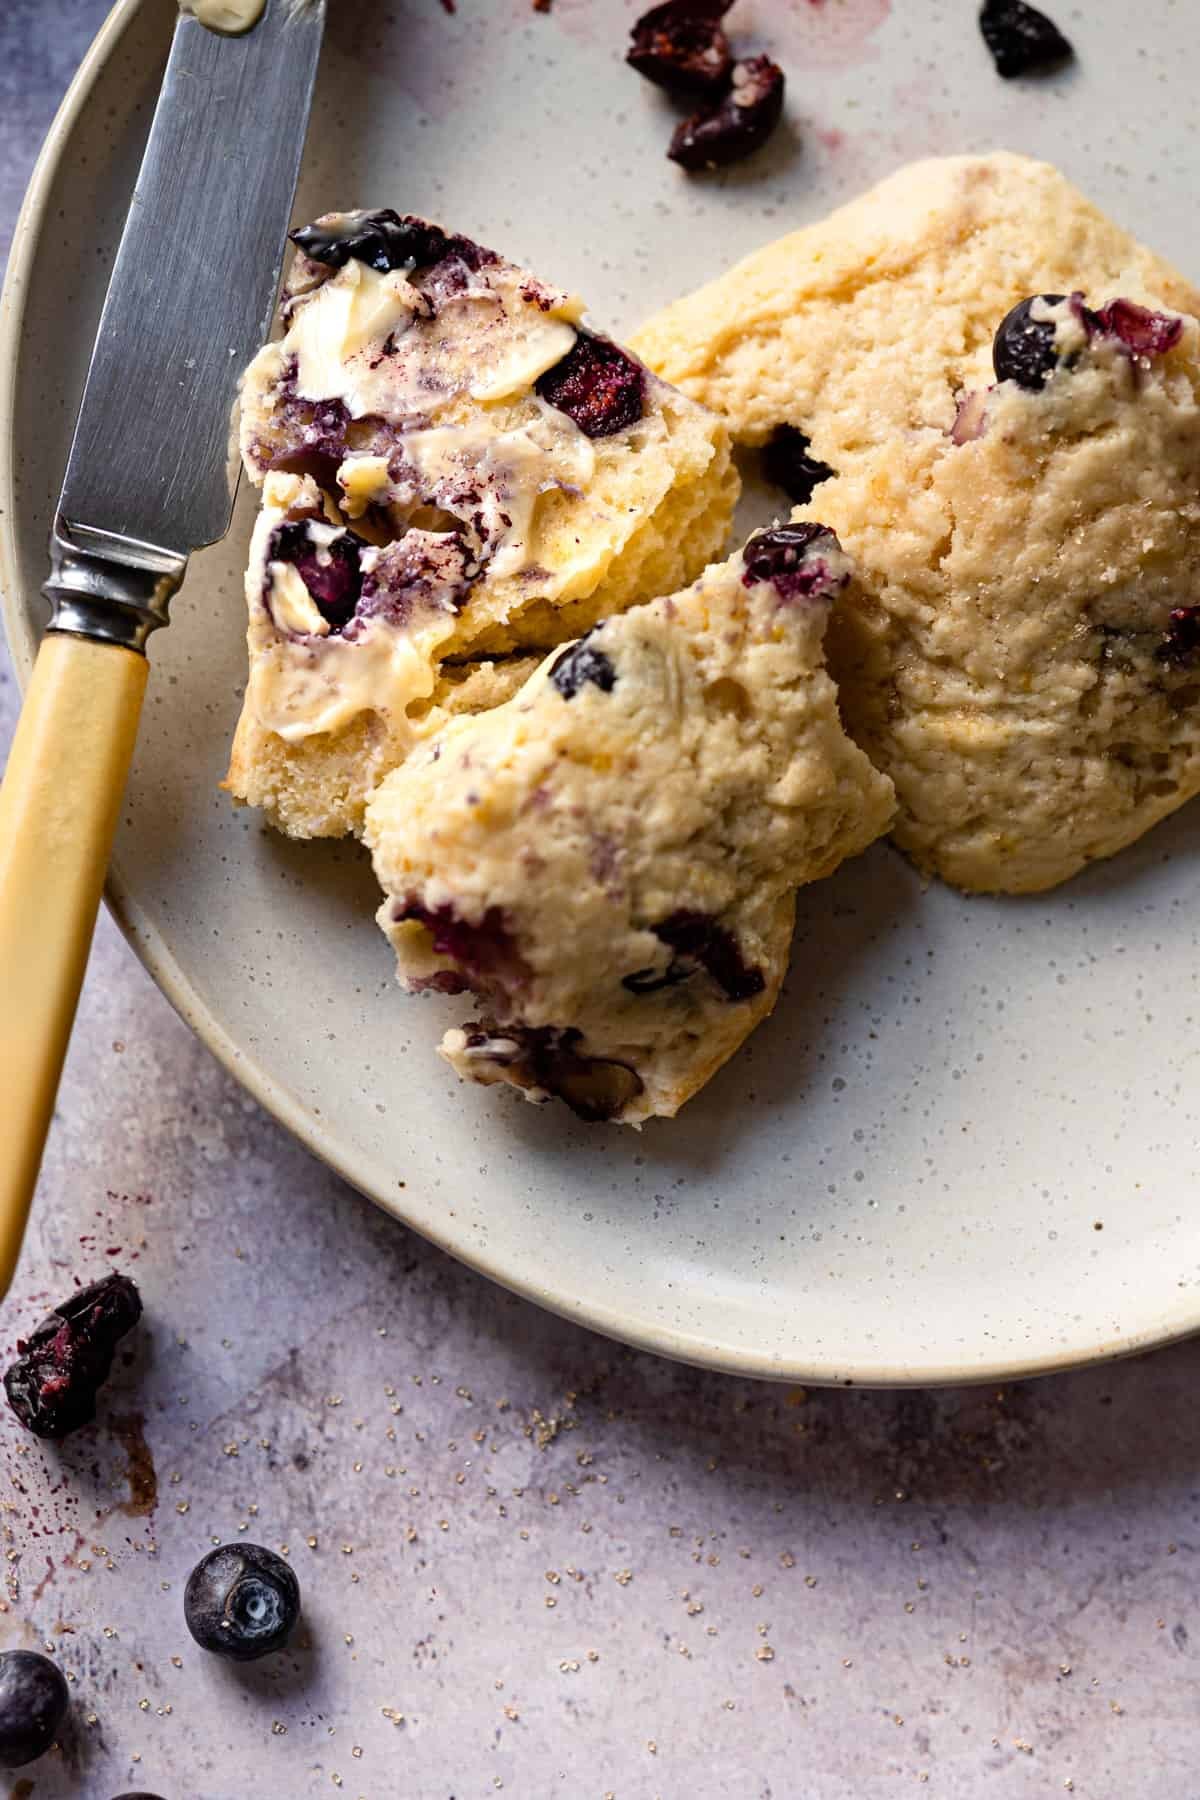 Blueberry scone with butter on it.